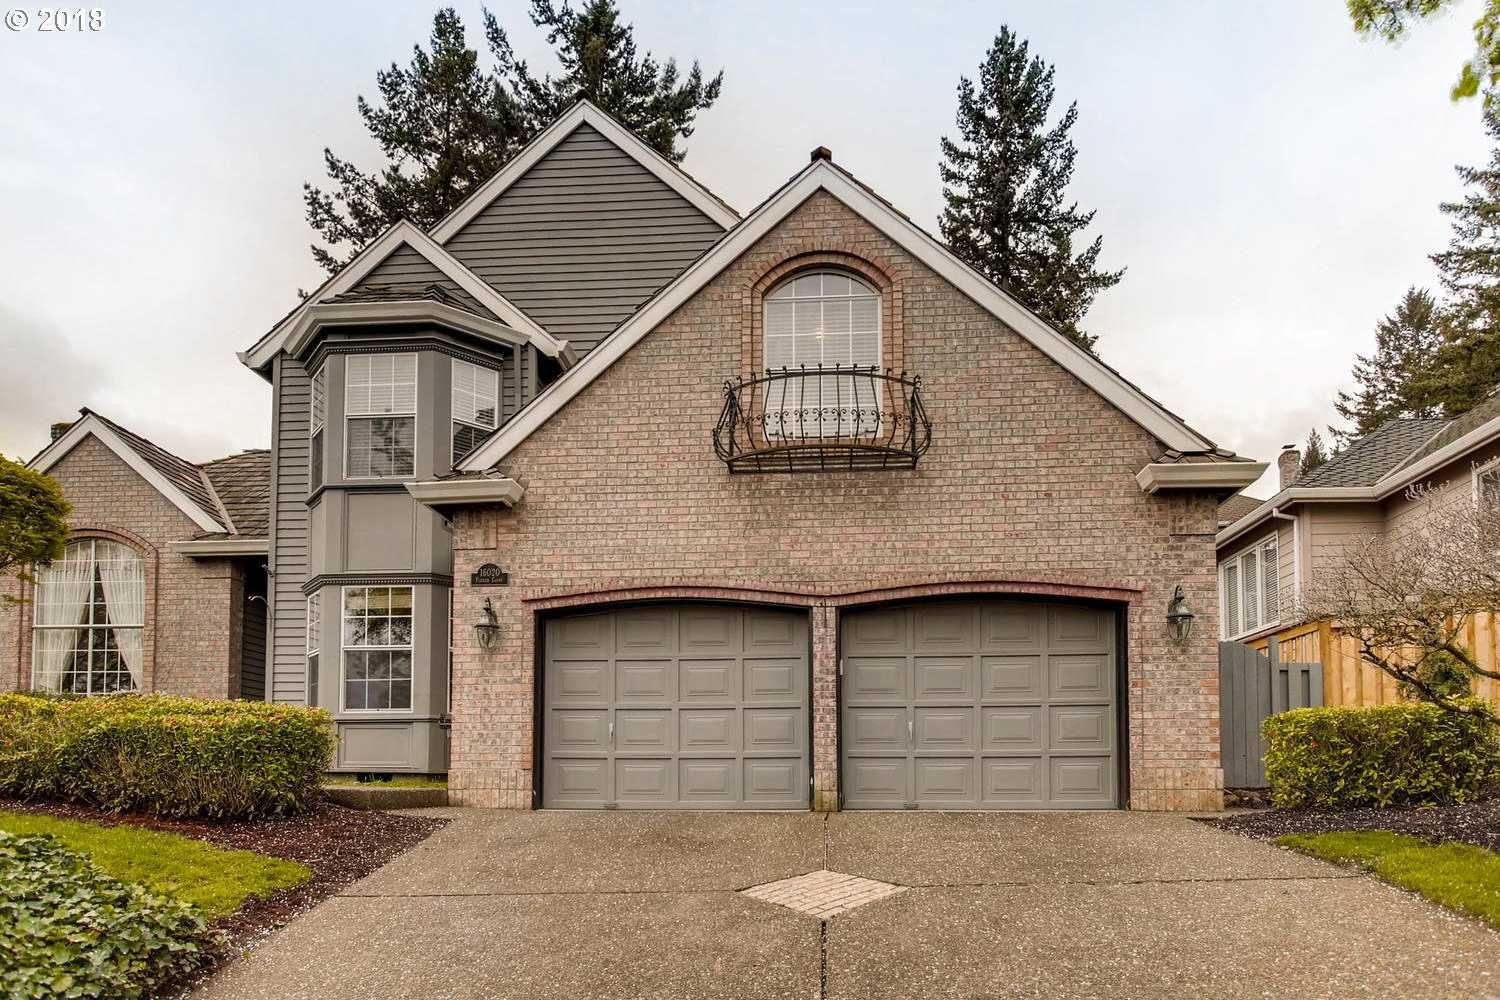 $614,999 - 4Br/3Ba -  for Sale in Murrayhill, Beaverton